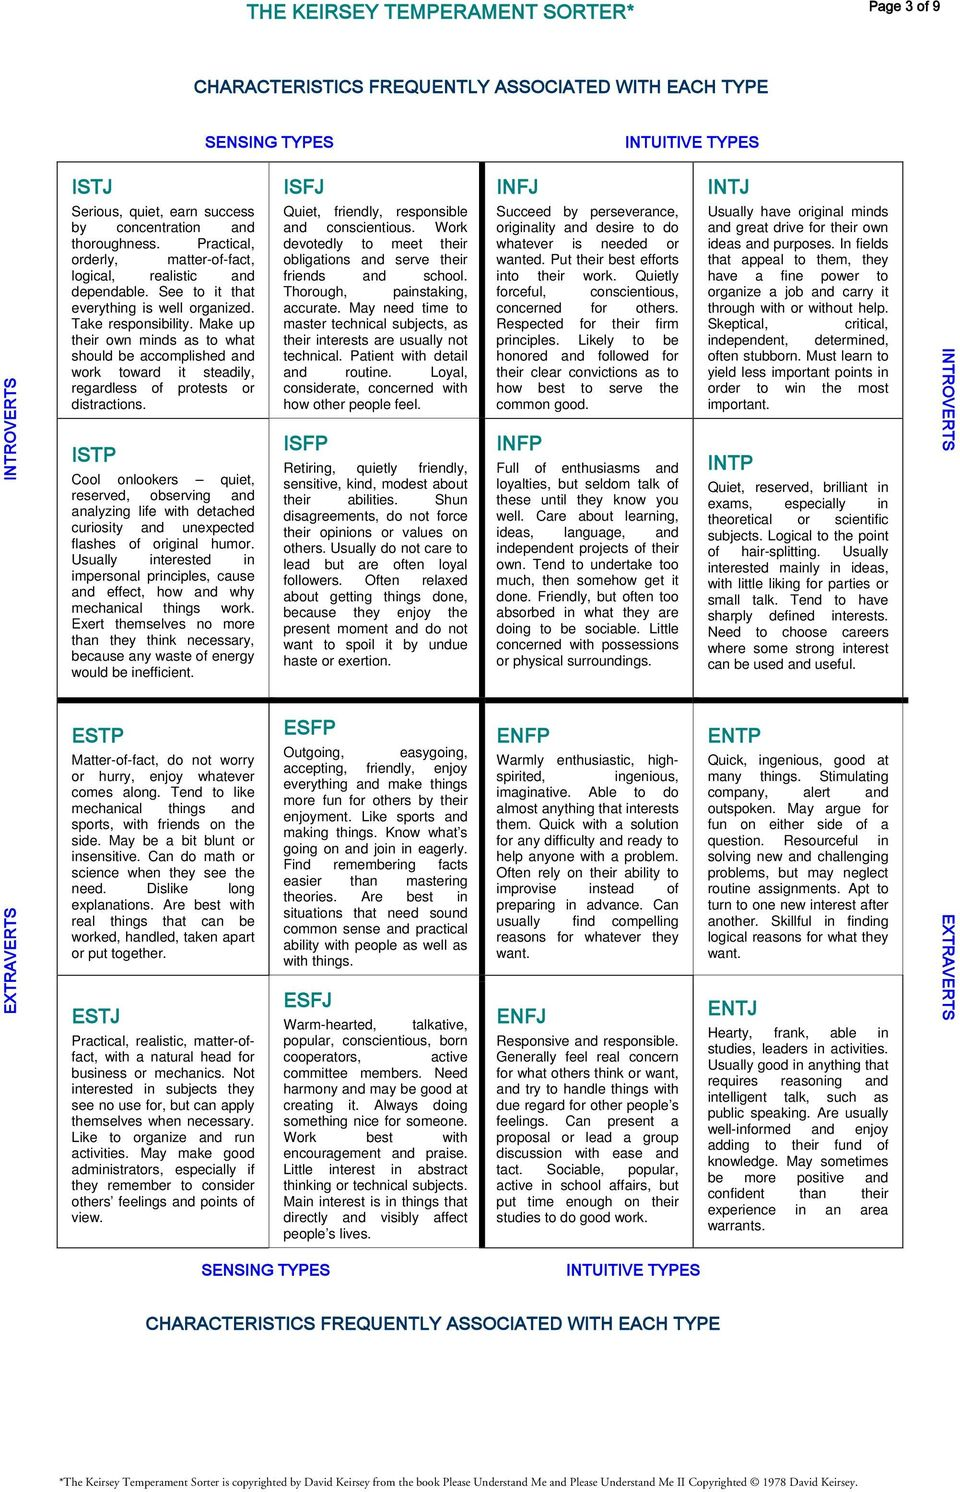 WHAT S YOUR TYPE? ISFJ INFJ A HIGH SENSE OF DUTY AN INSPIRATION TO